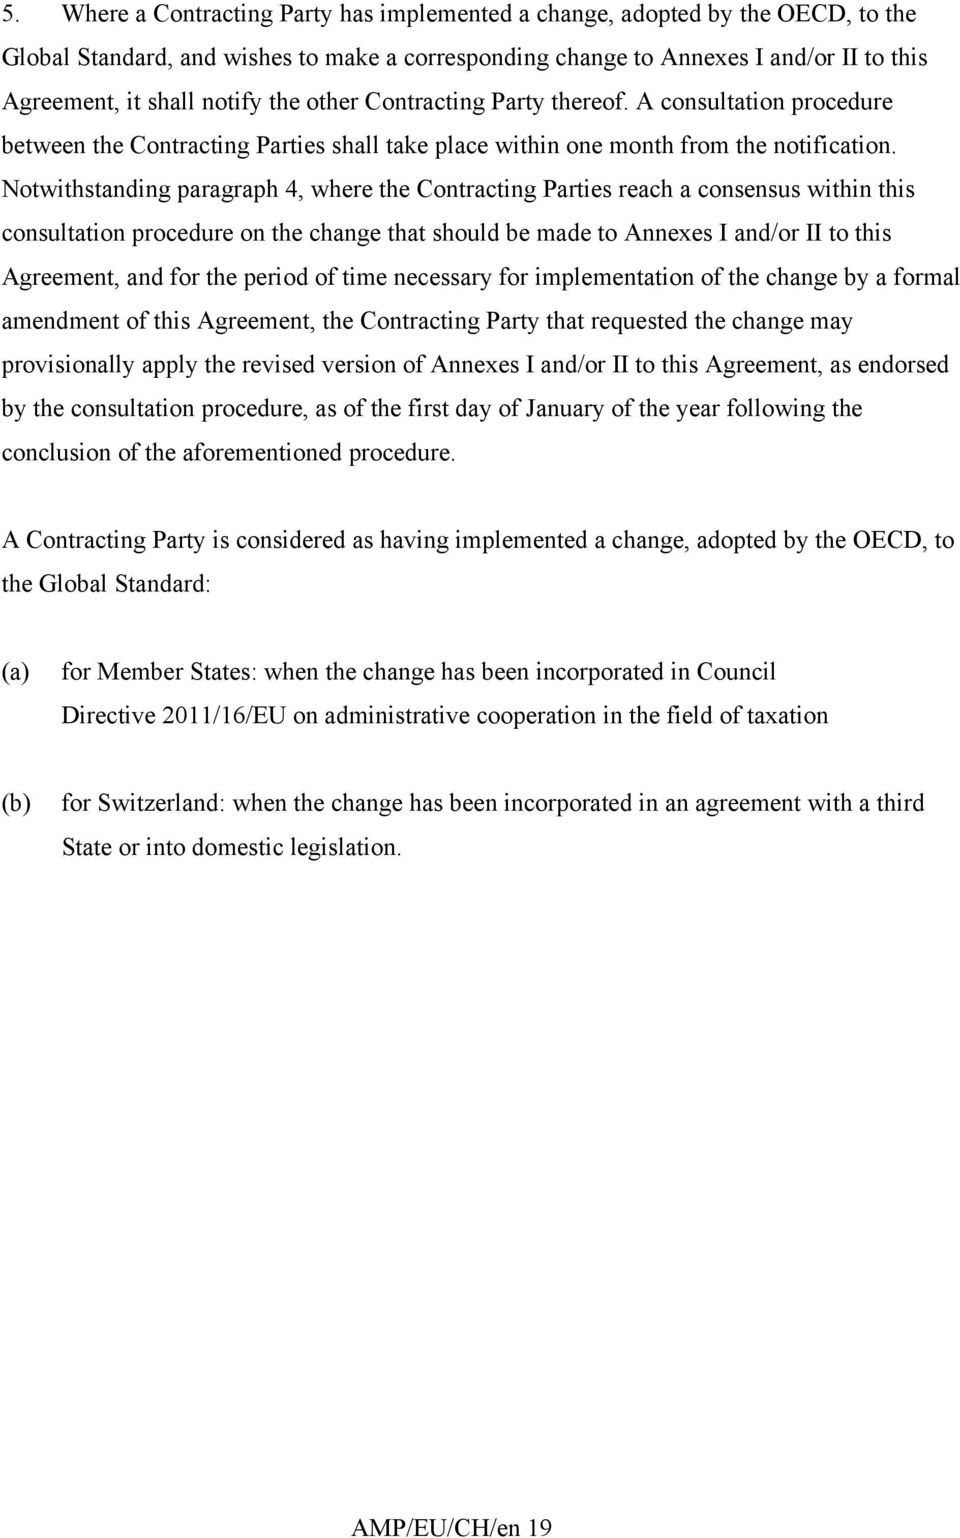 Notwithstanding paragraph 4, where the Contracting Parties reach a consensus within this consultation procedure on the change that should be made to Annexes I and/or II to this Agreement, and for the